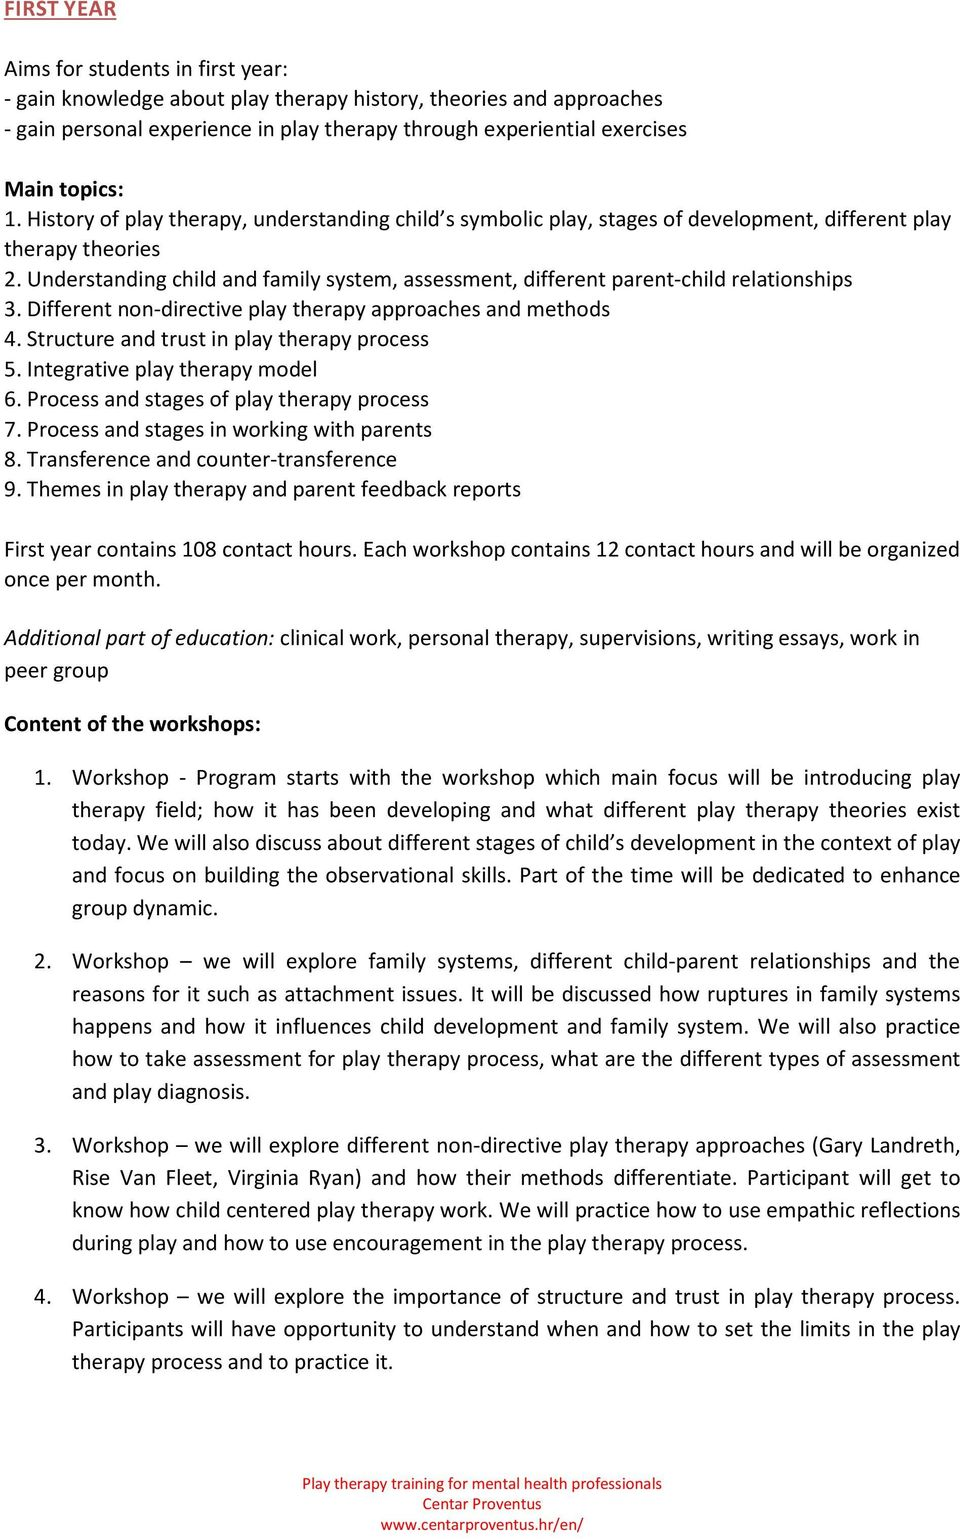 What is your understanding of clinical mental health counseling essay